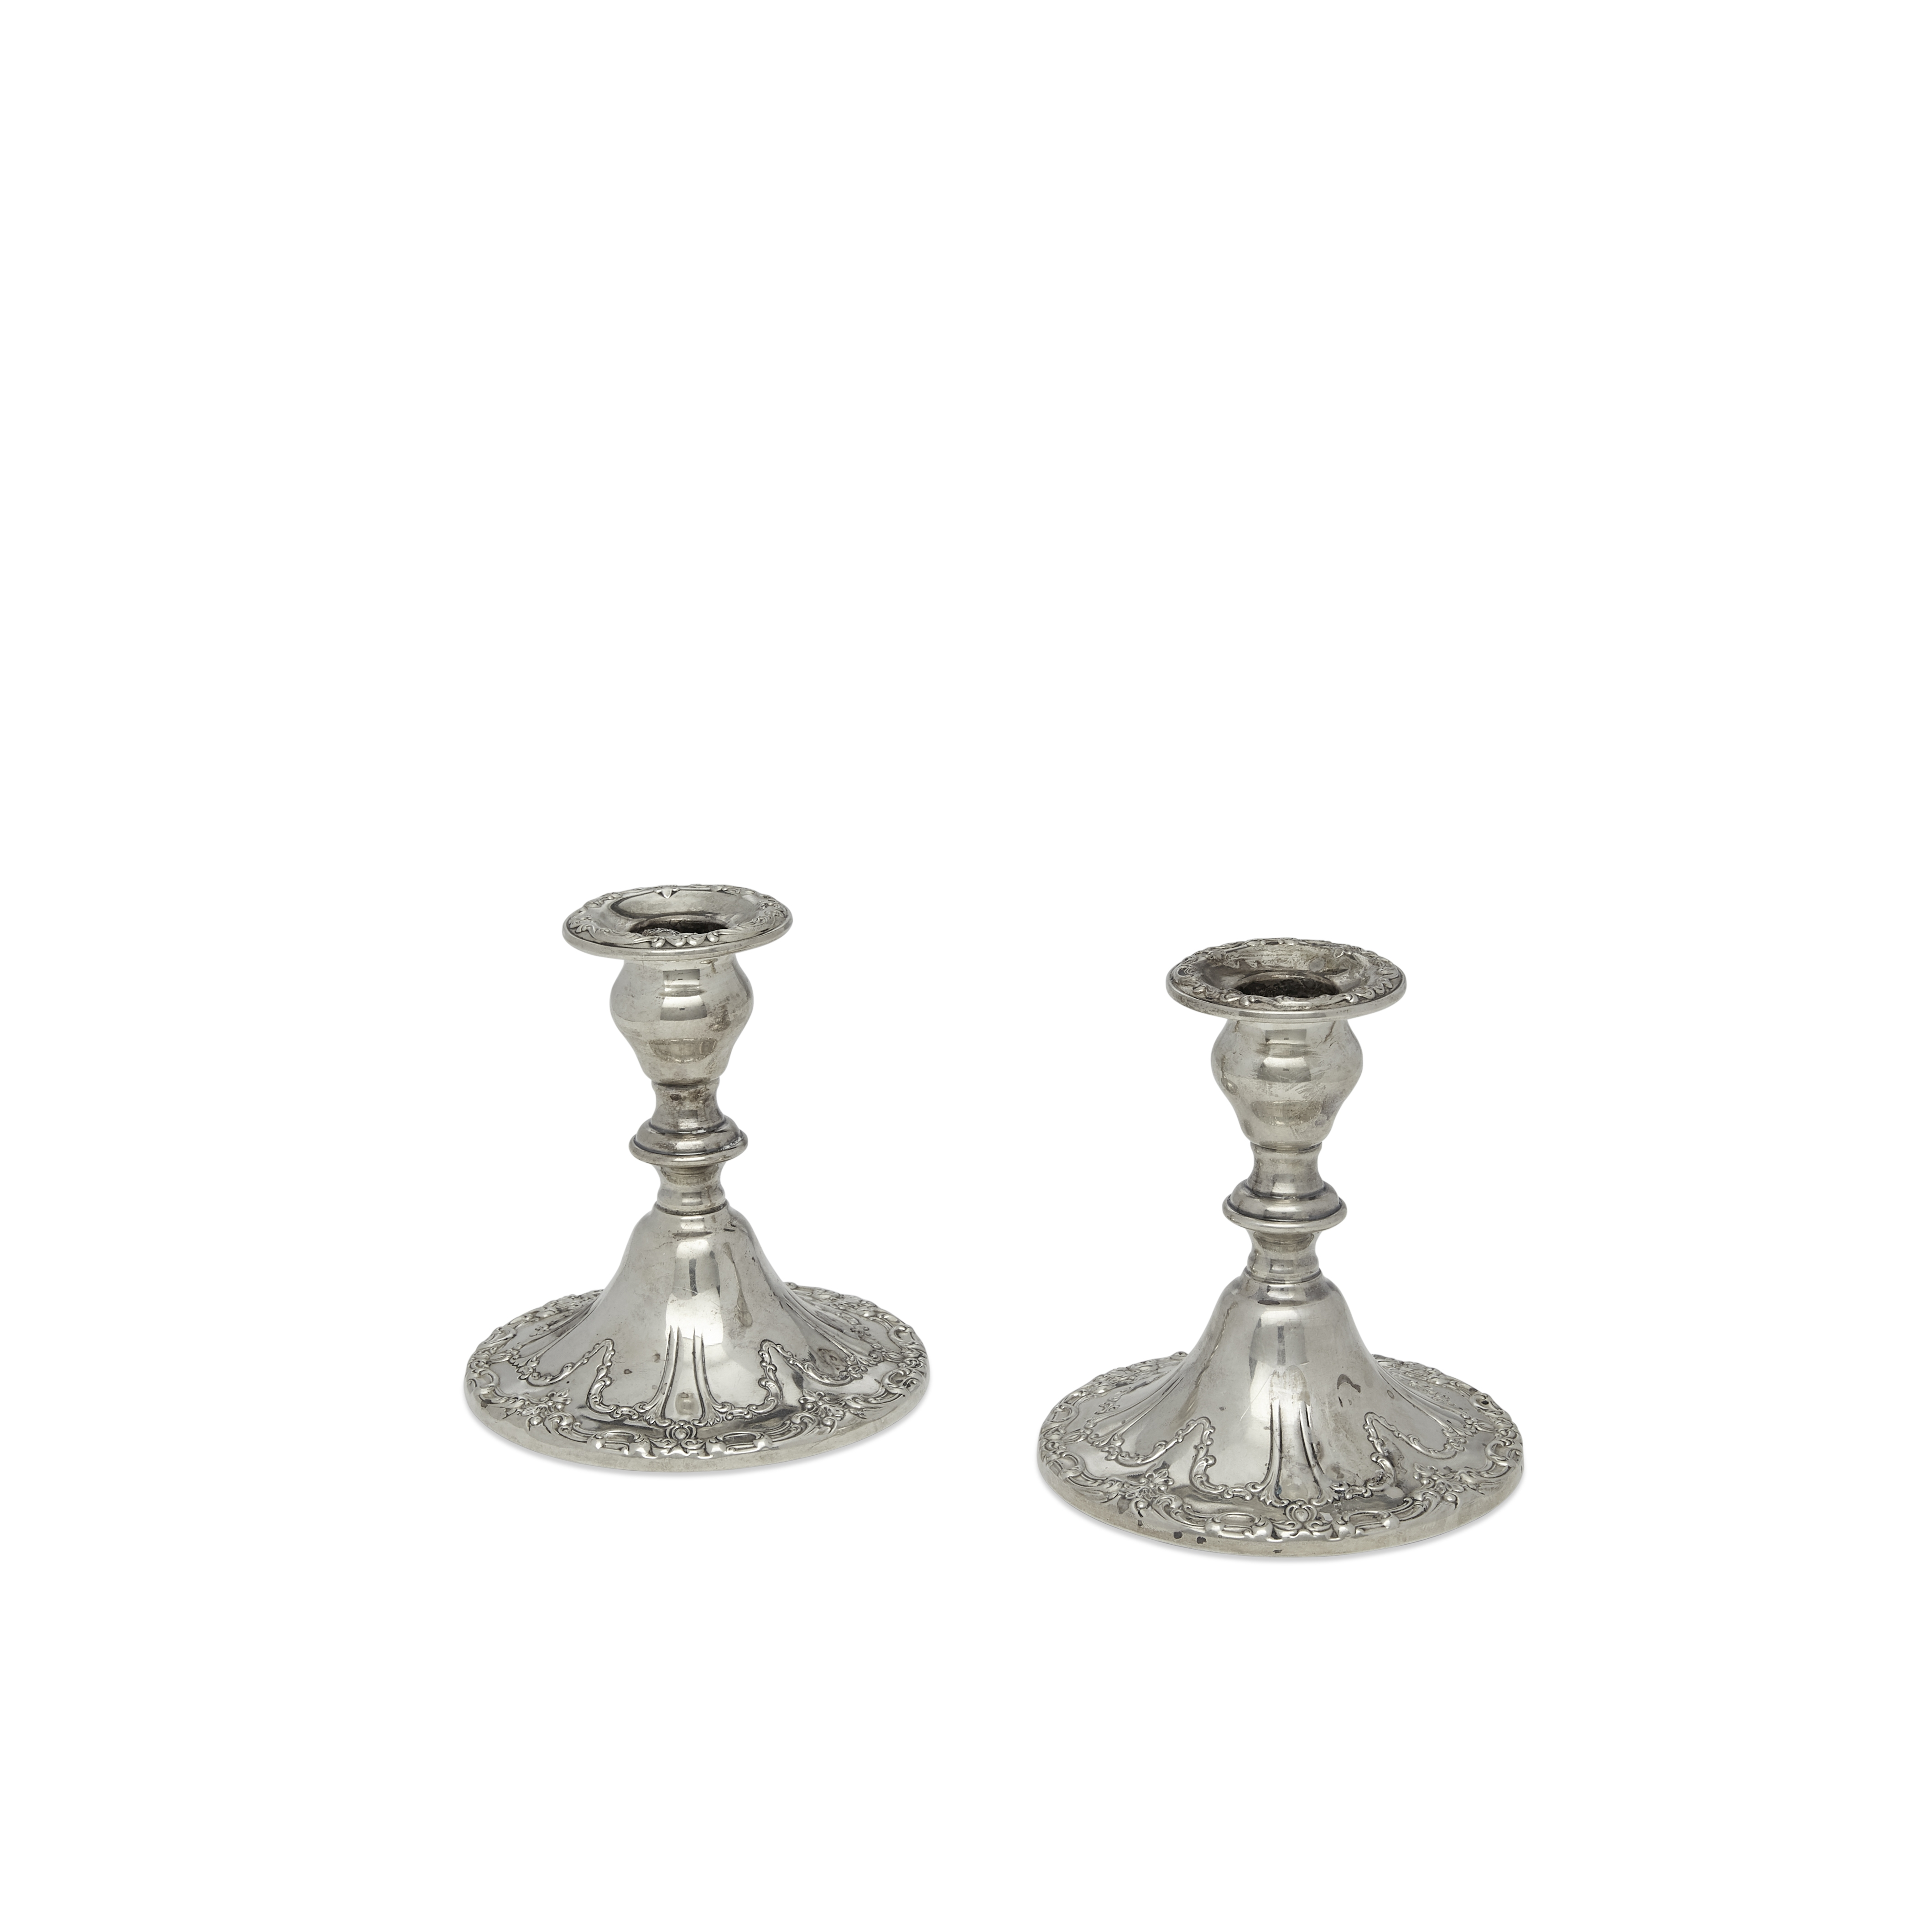 An pair of American weighted sterling silver console candleholders by Gorham Mfg. Co., Providence...